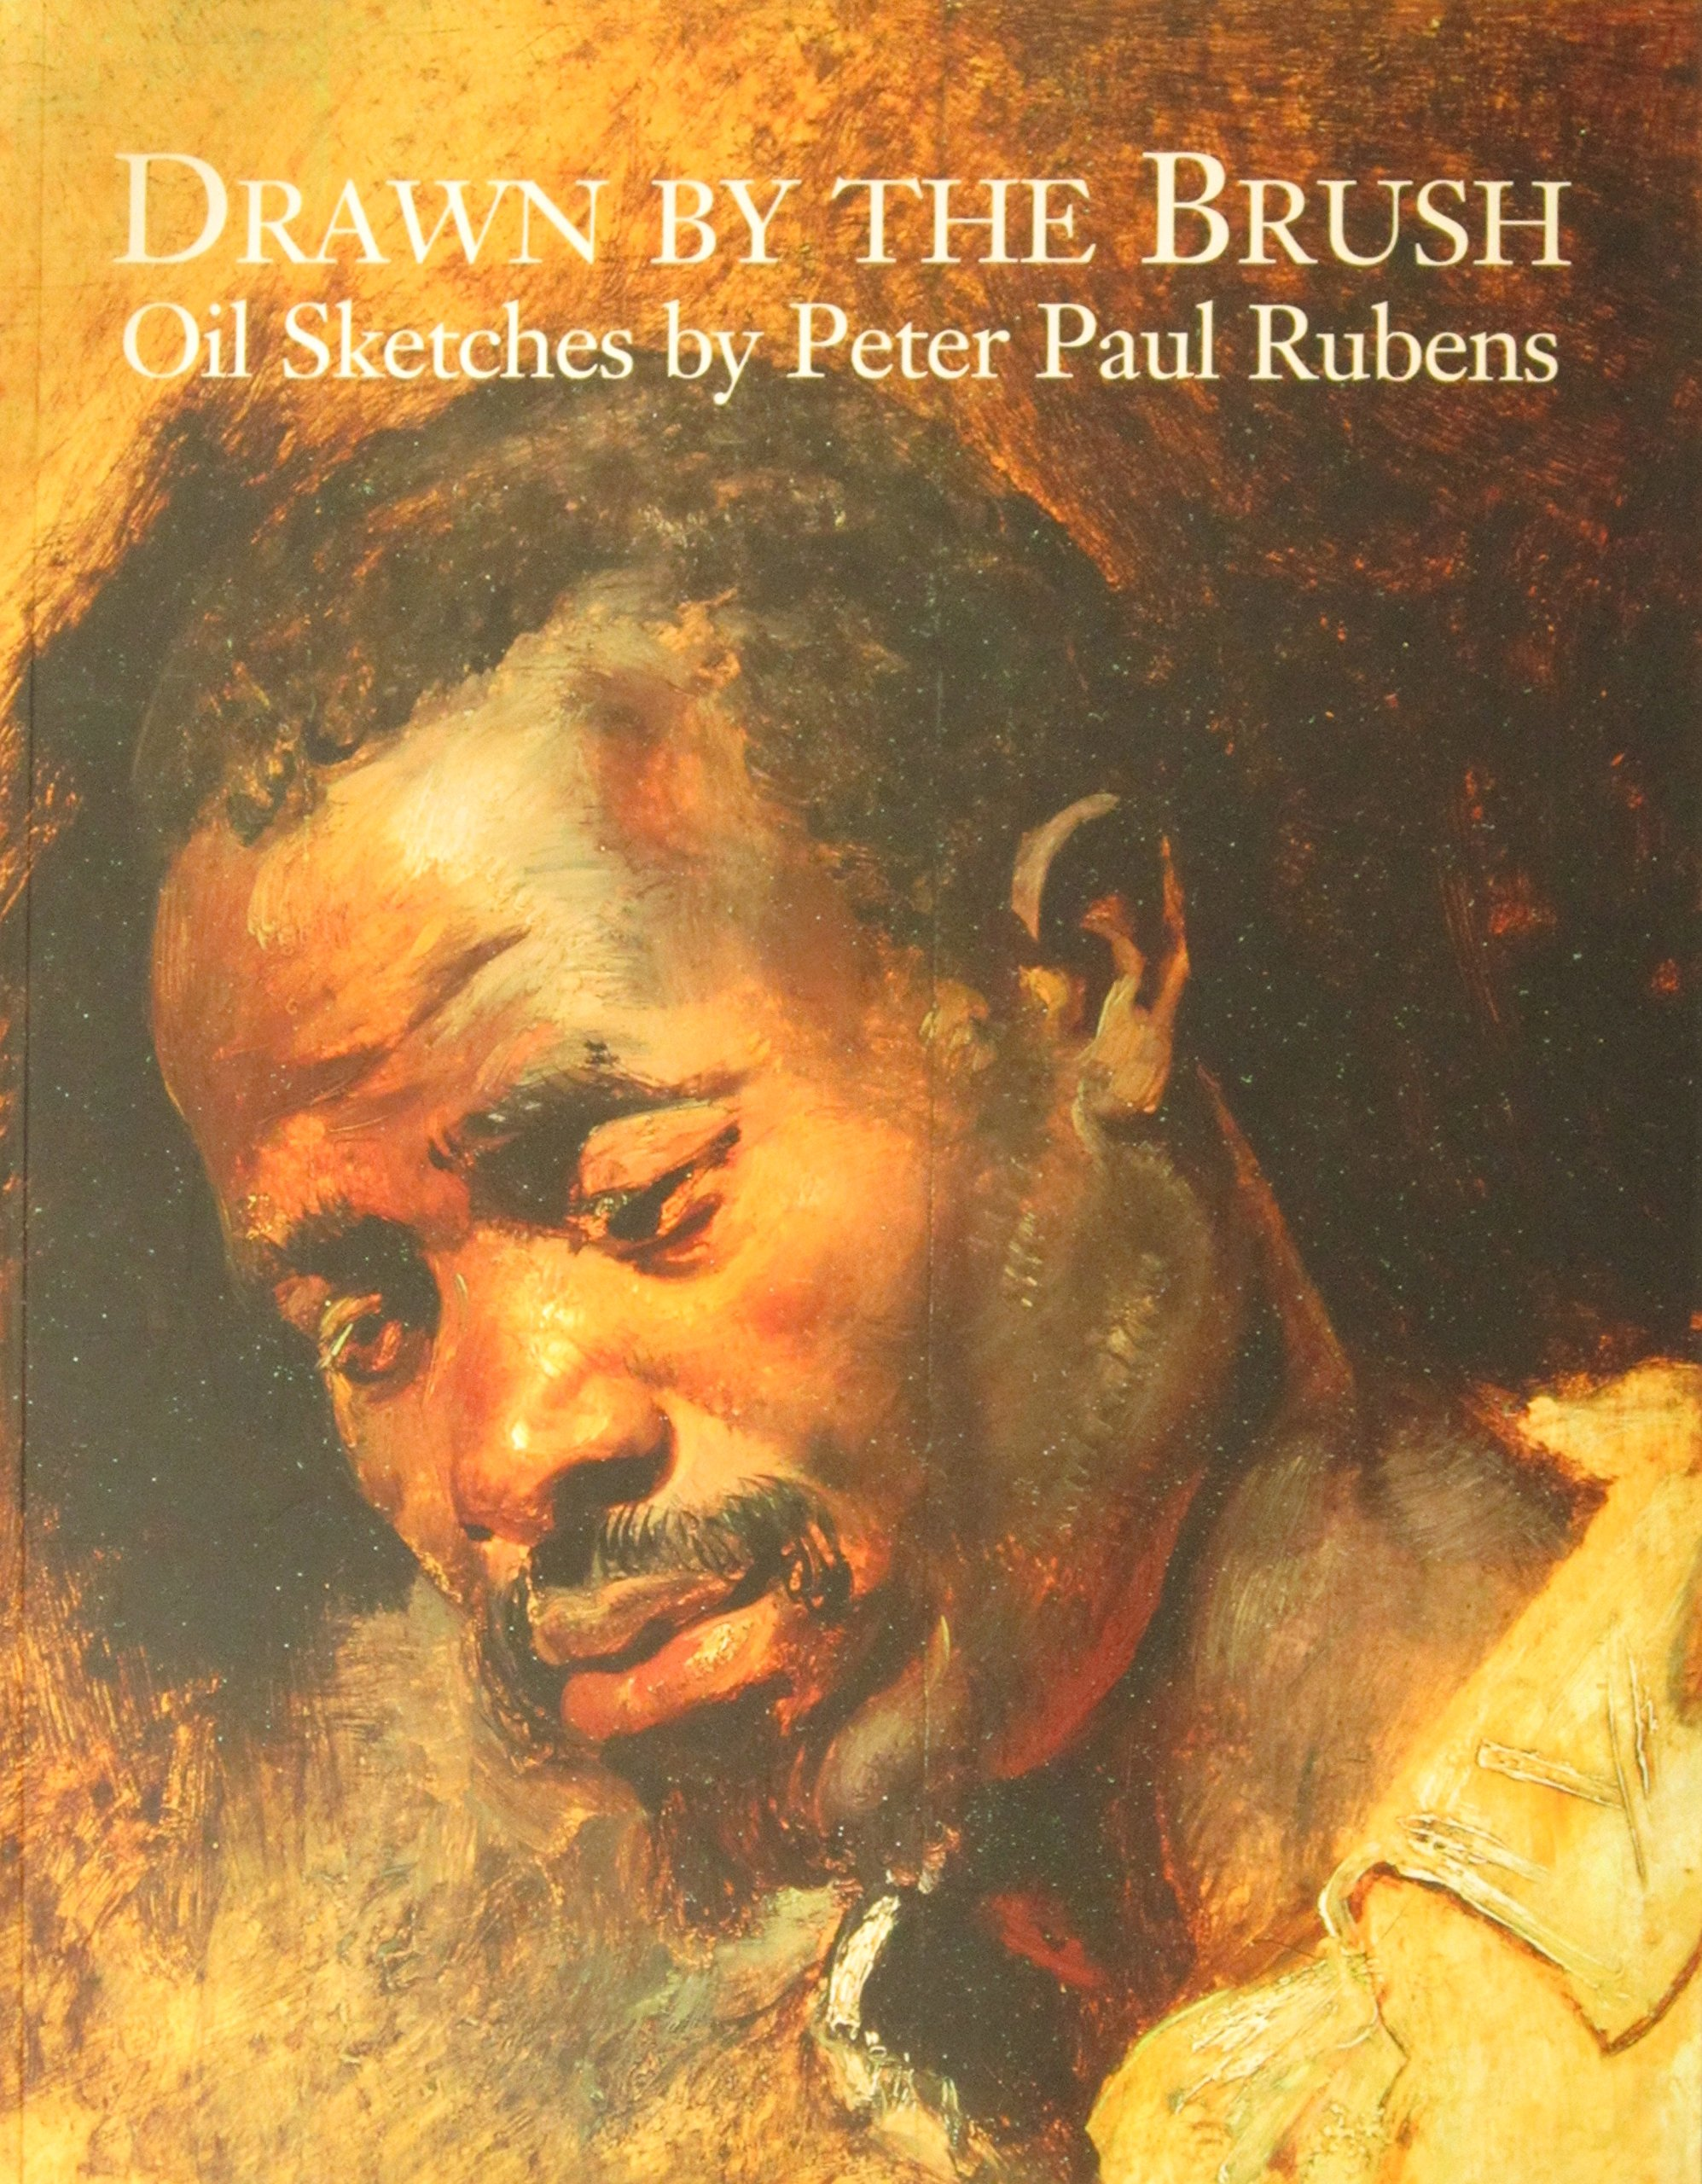 Drawn by the Brush: Oil Sketches by Peter Paul Rubens ebook